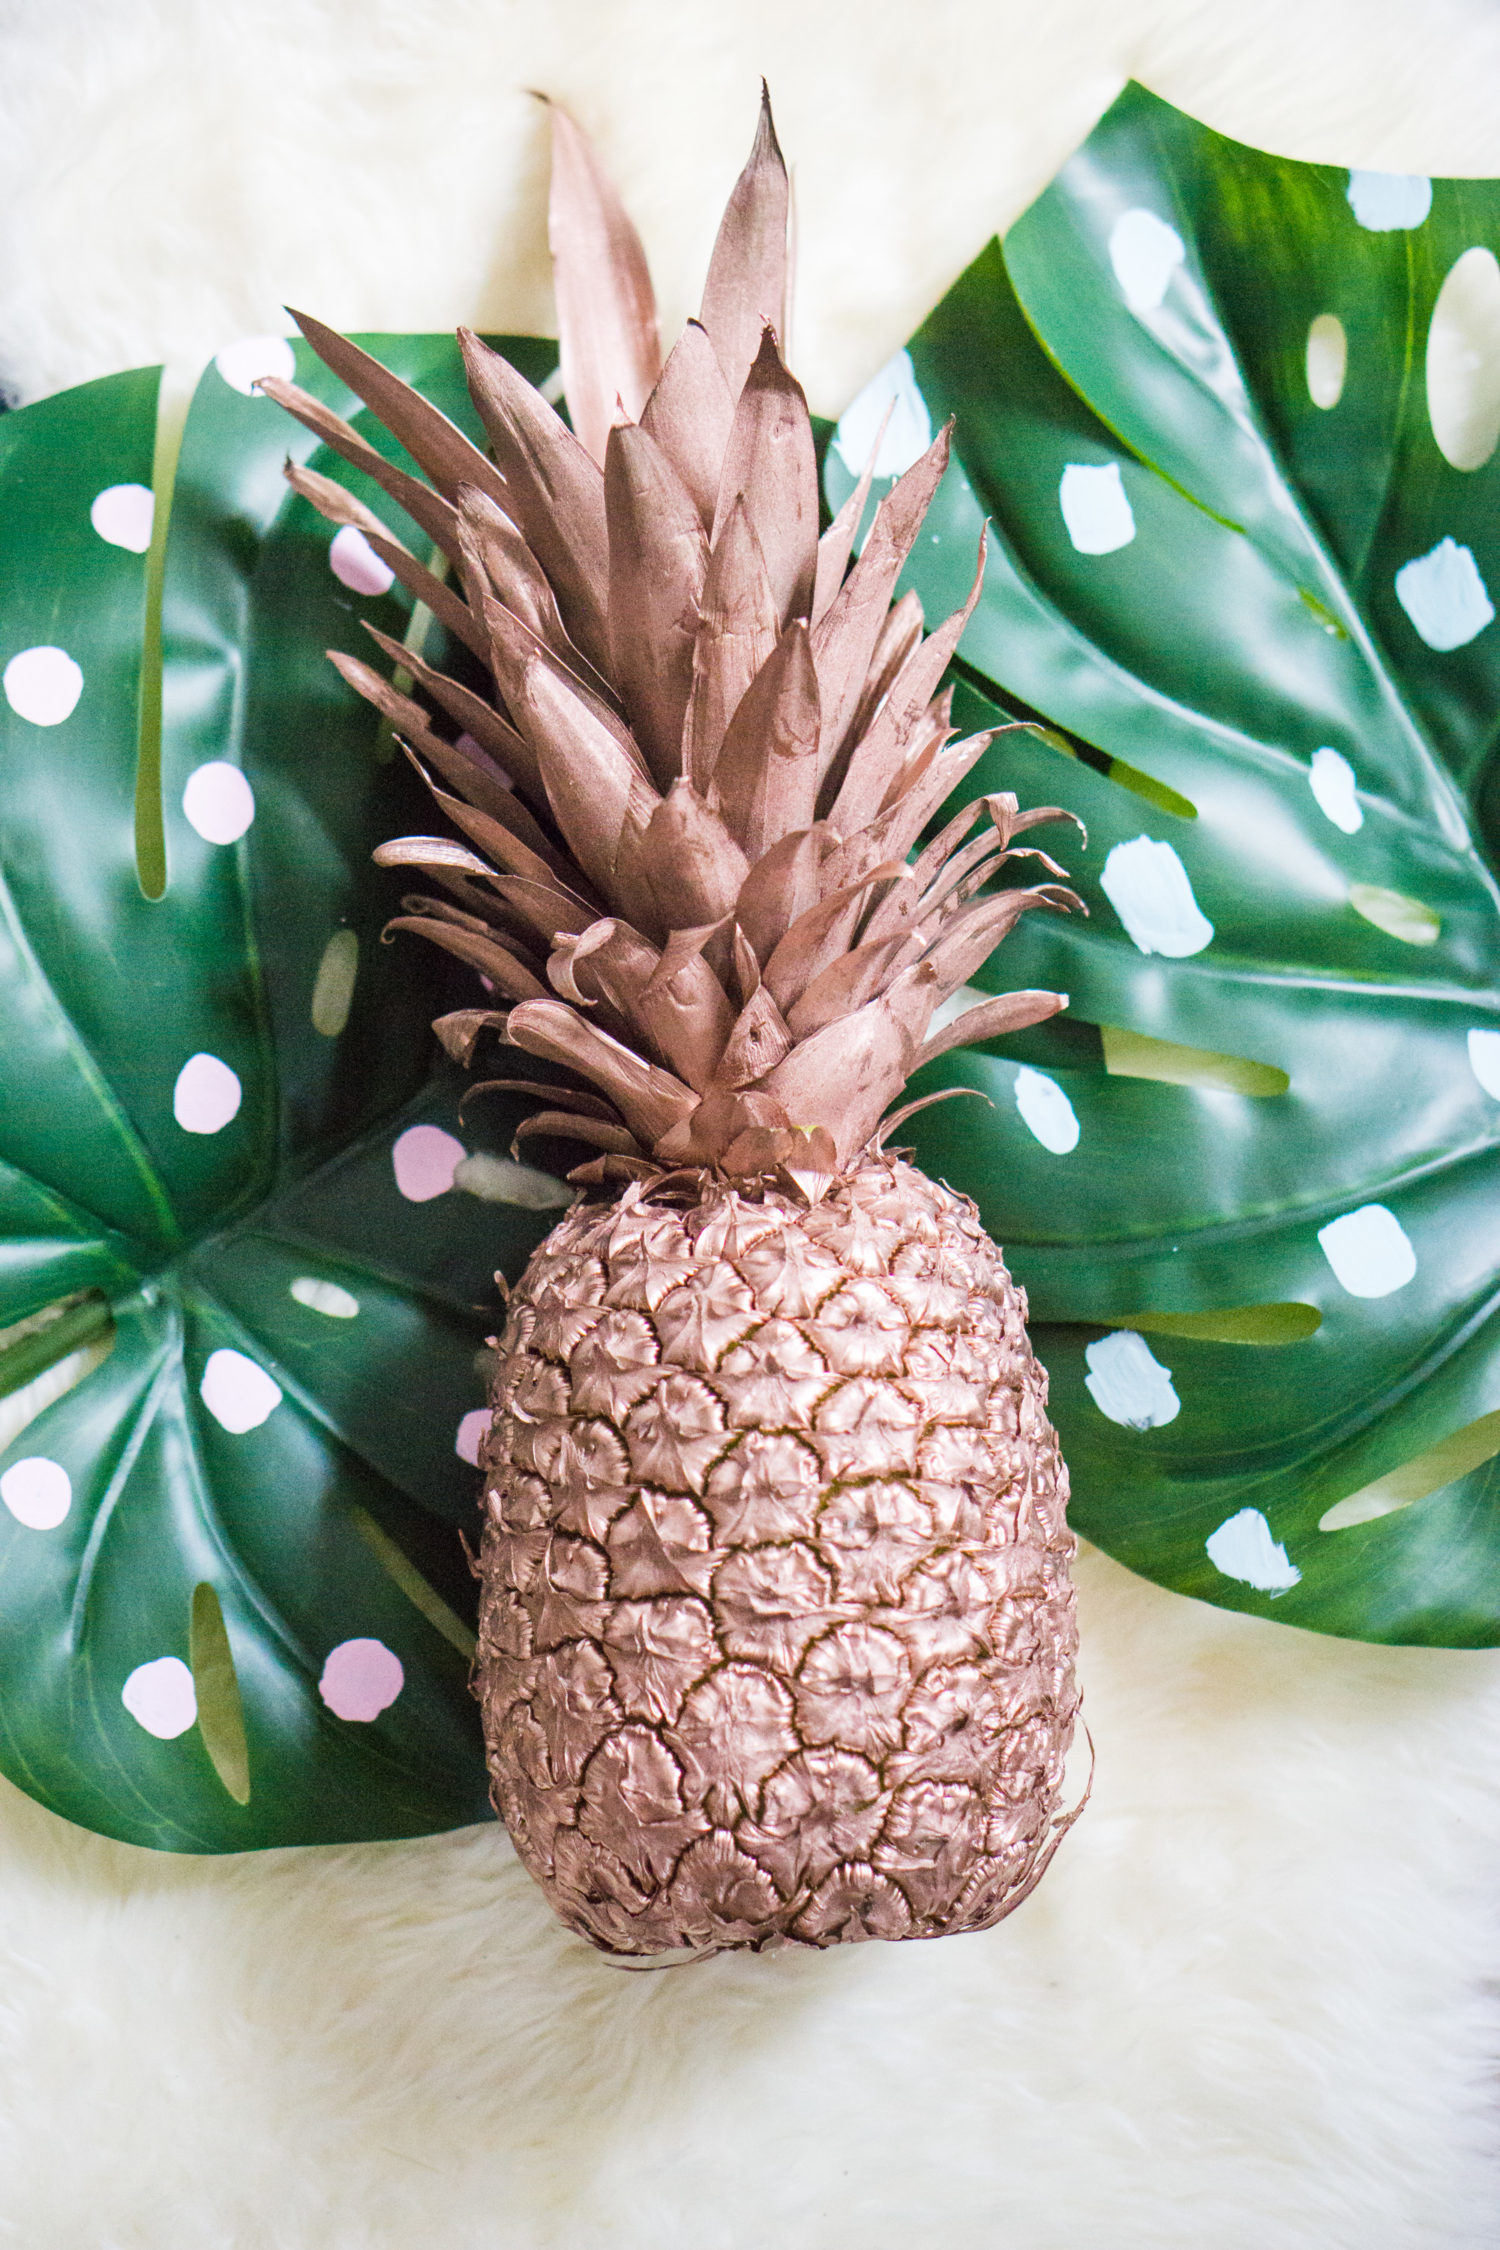 DIY painted pineapple decor idea